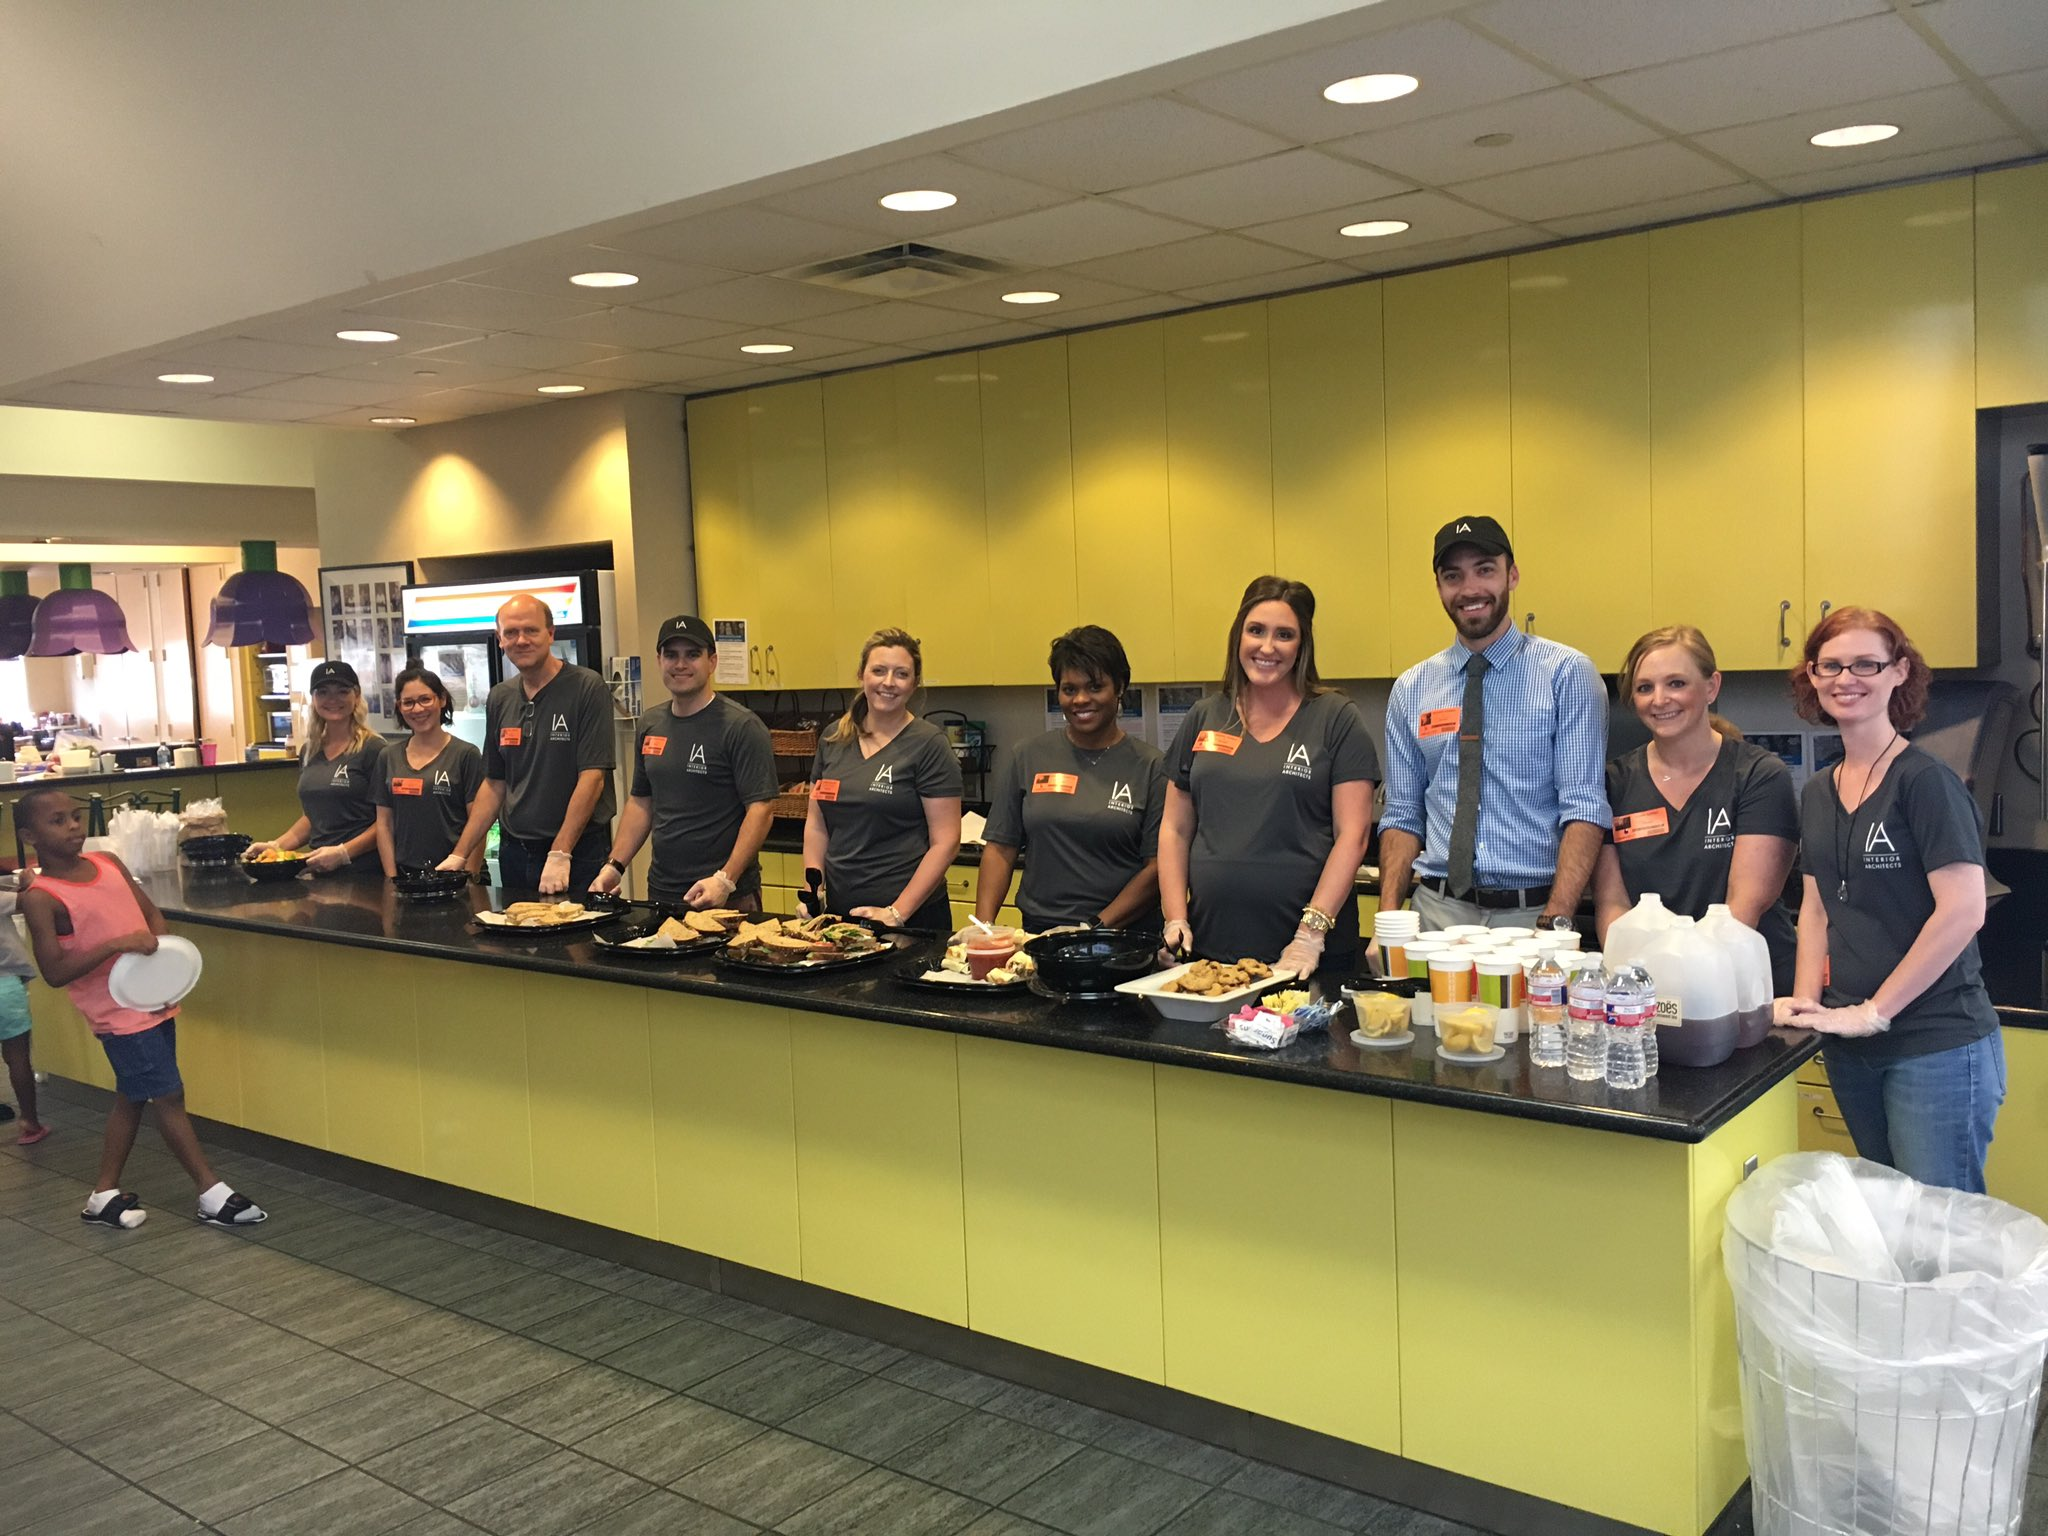 russellmanthy  @IAarchitects Houston team volunteered at Ronald McDonald House today #Houston #IAReach #HTX https://t.co/bdS5y4ezkW  6/26/17, 6:36 PM